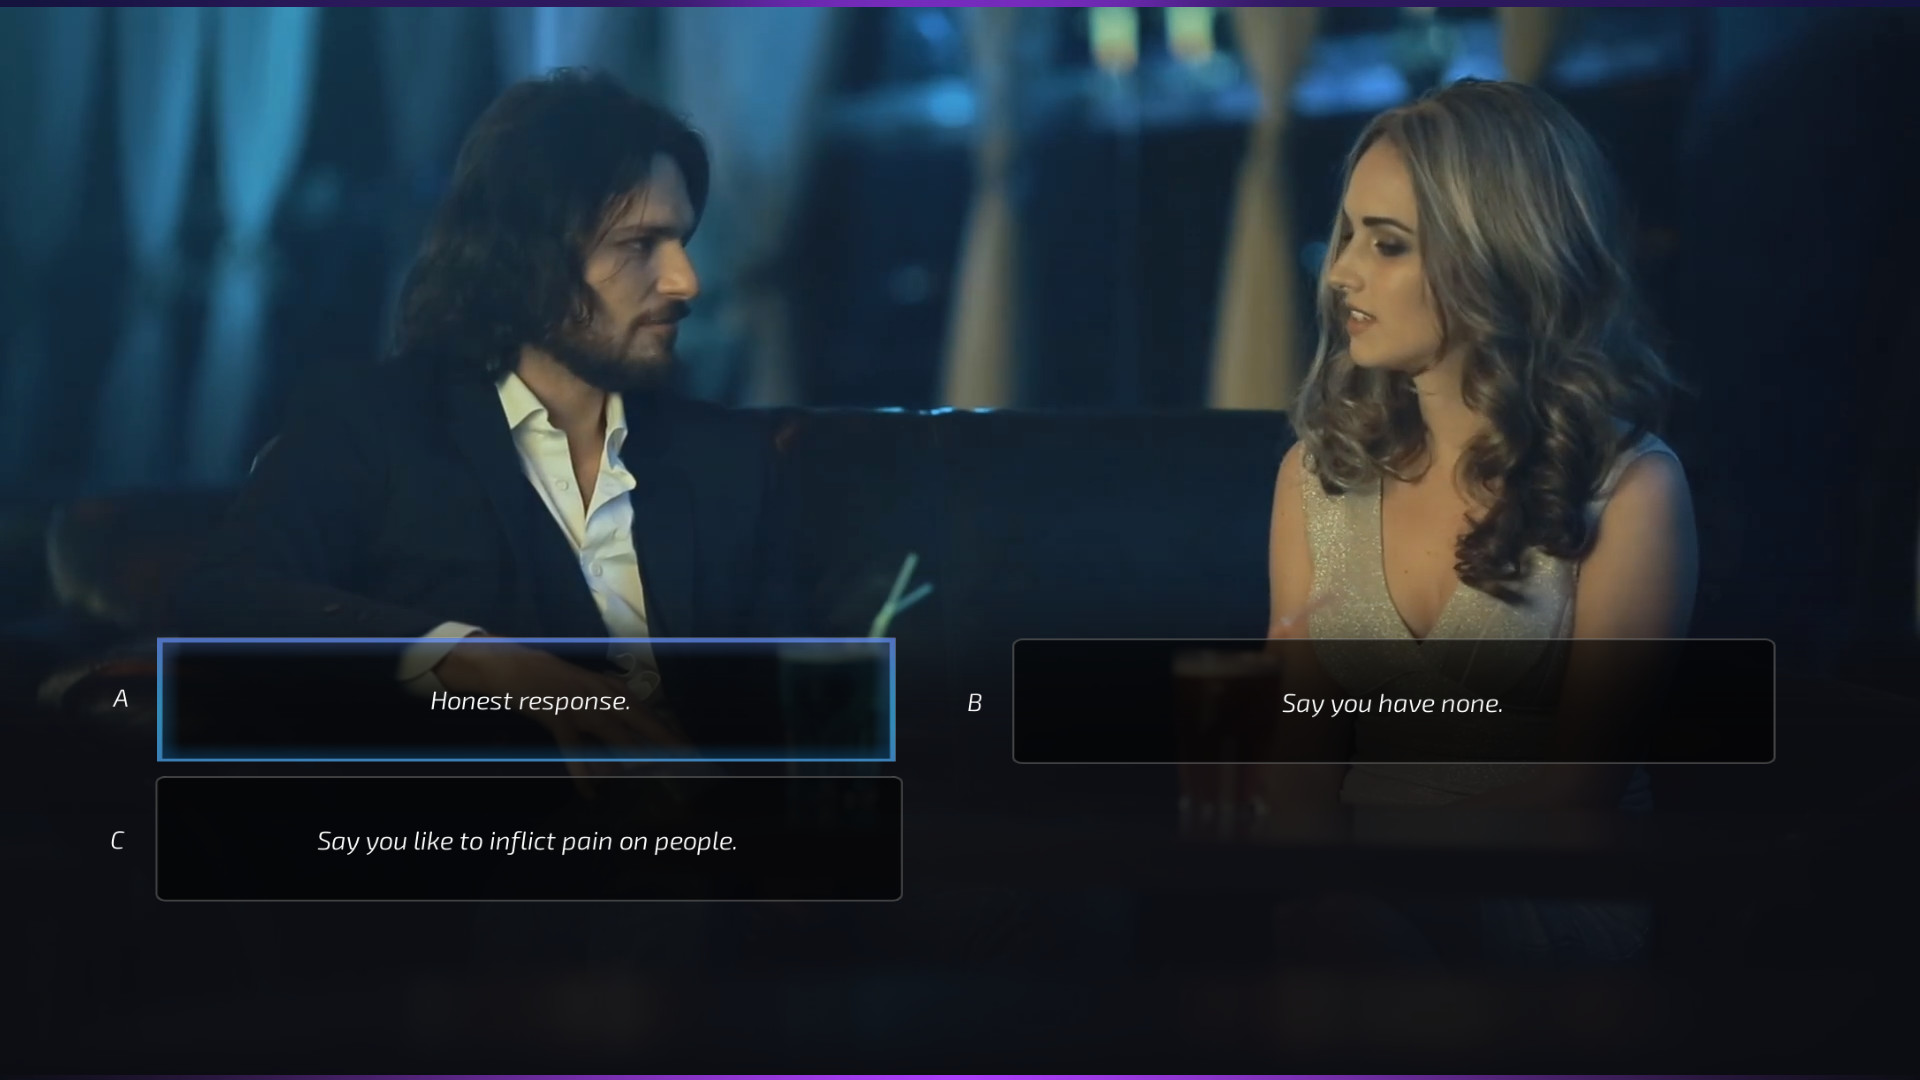 Super Seducer Blocked From Release On Ps4 By Sony - Vg247-3306